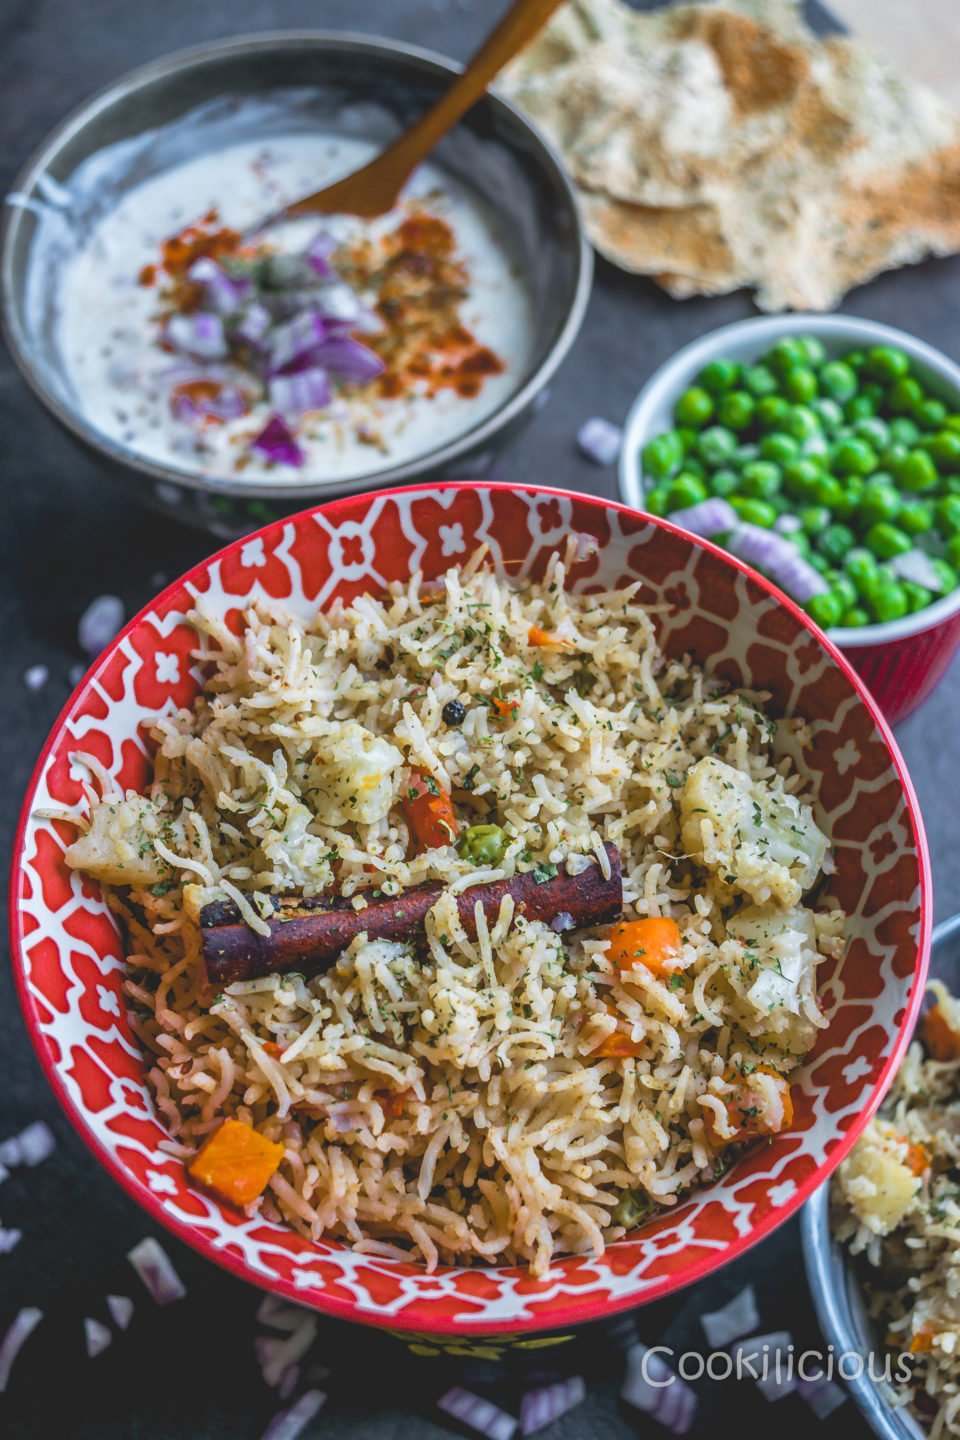 A bowl of Vegetable Pulao in an Instant Pot with raita and green peas in the background